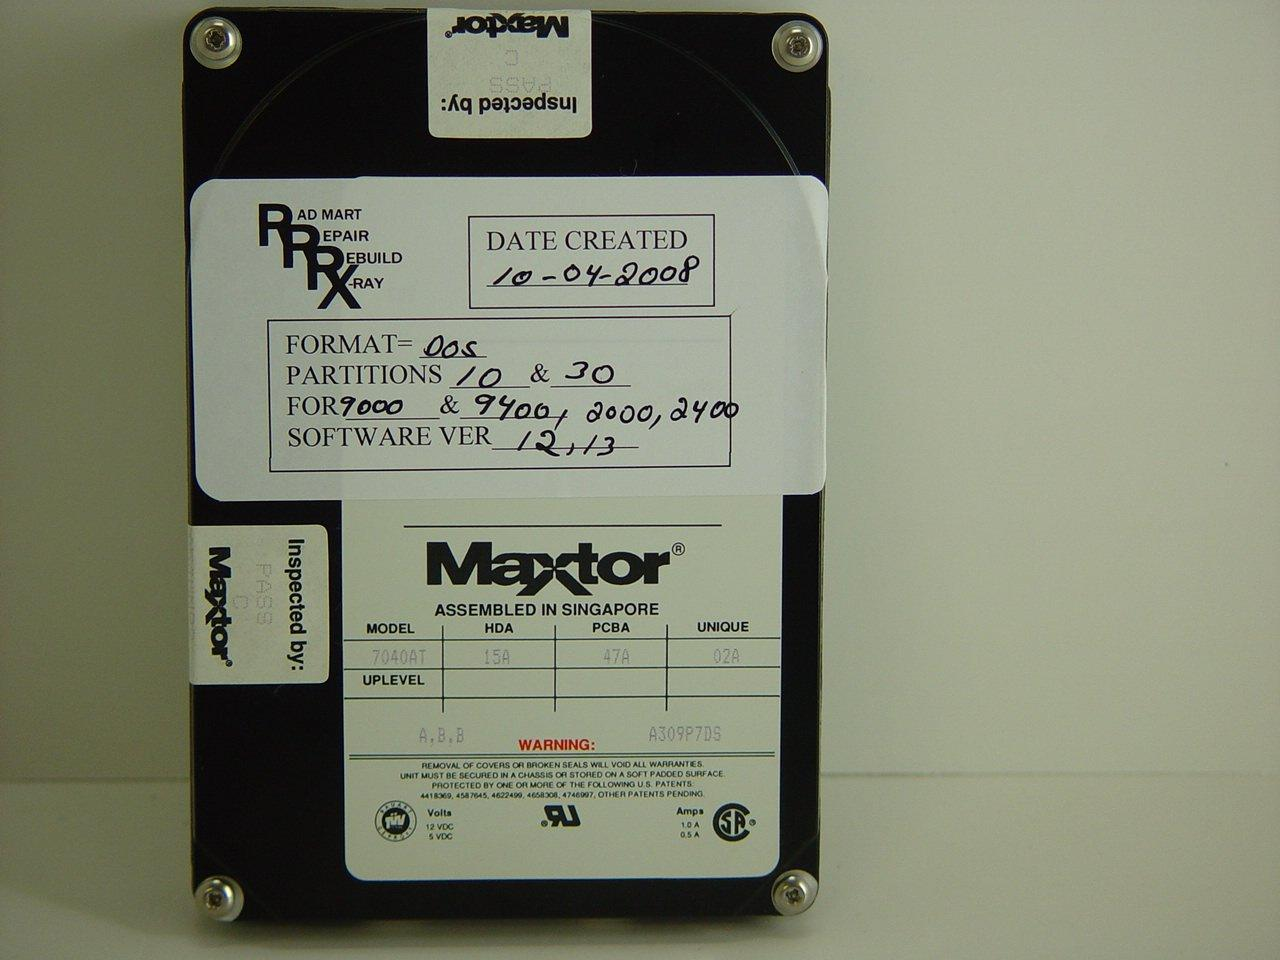 Hard Drives - OEC-9400 HARD DRIVE 9400 WITH SOFTWARE LOADED (00-877024-02) (00-877024-03)